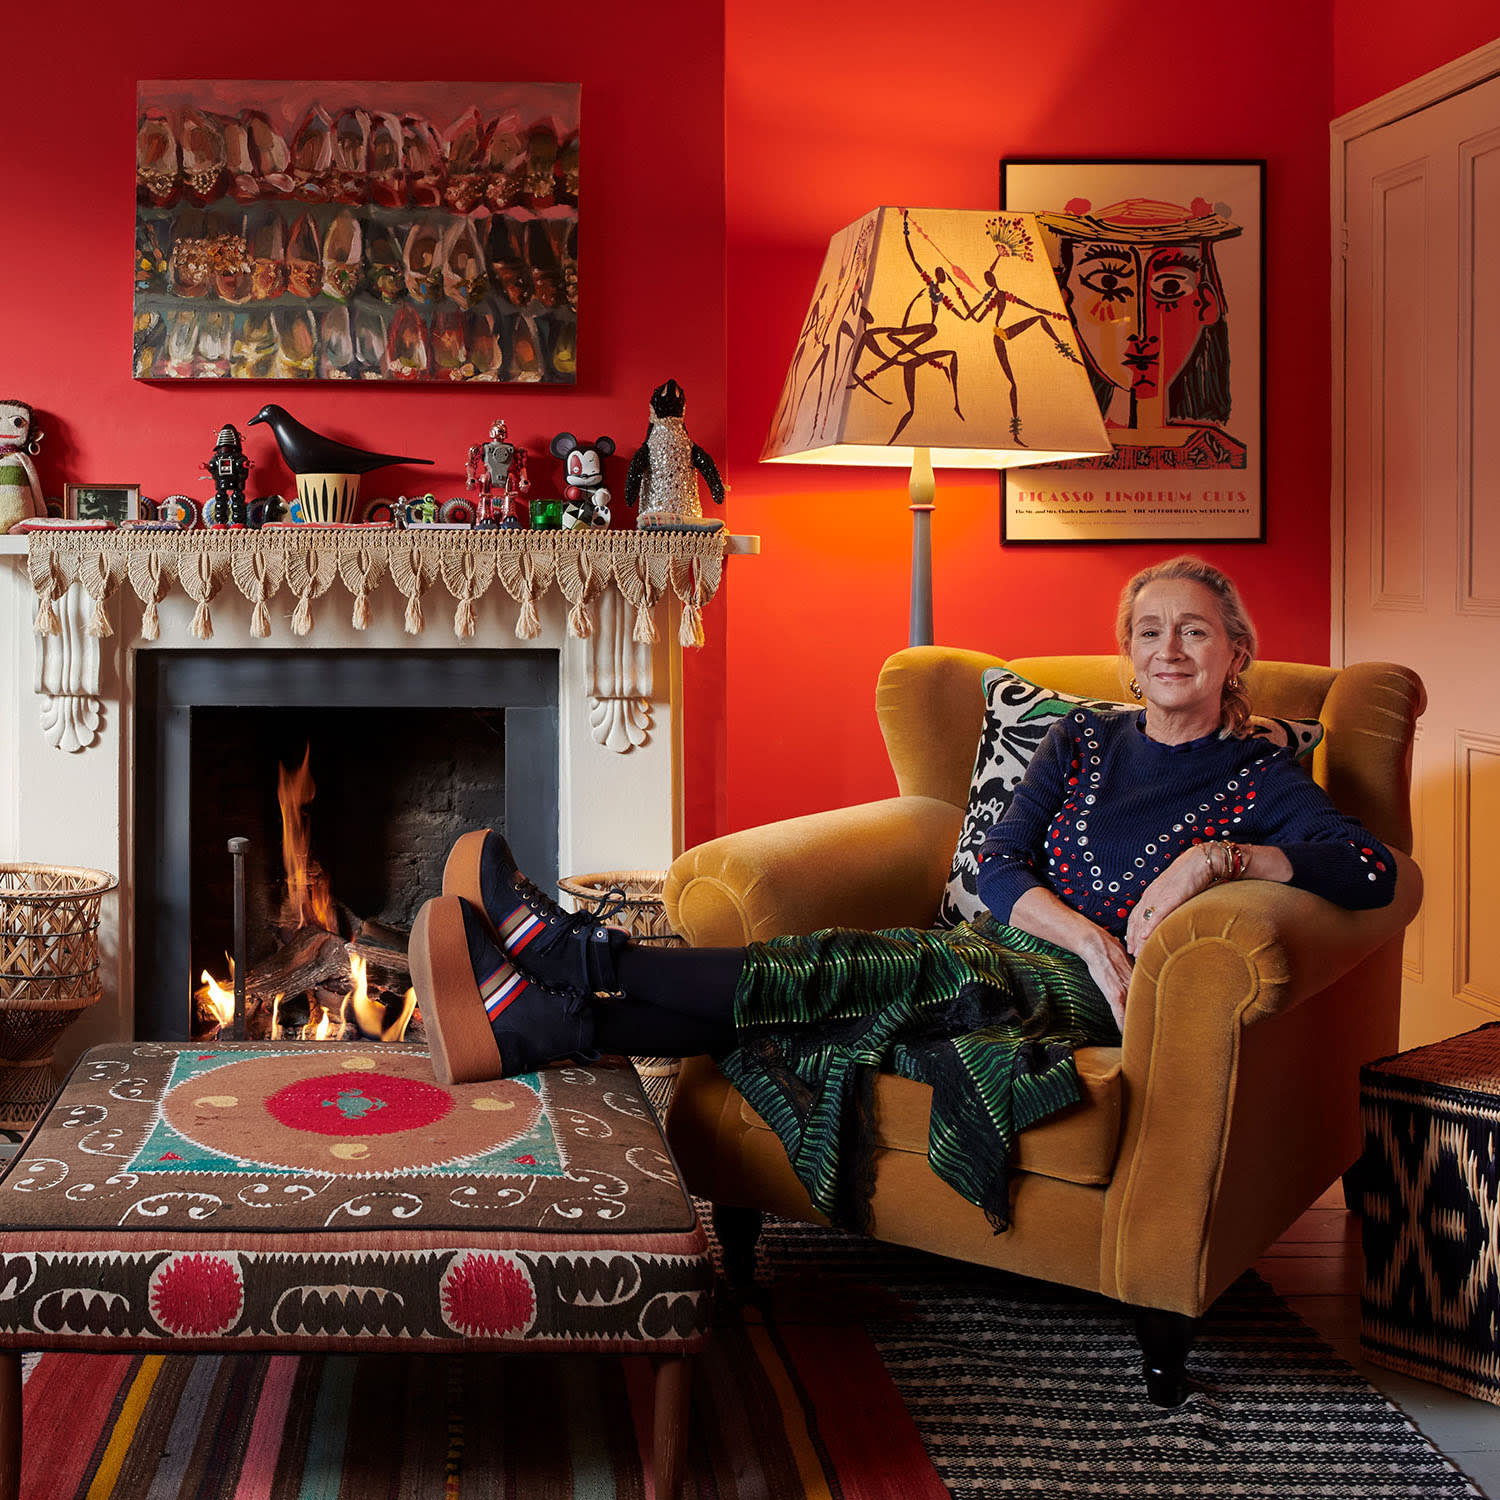 Lucinda Chambers sat on her armchair next to the fire